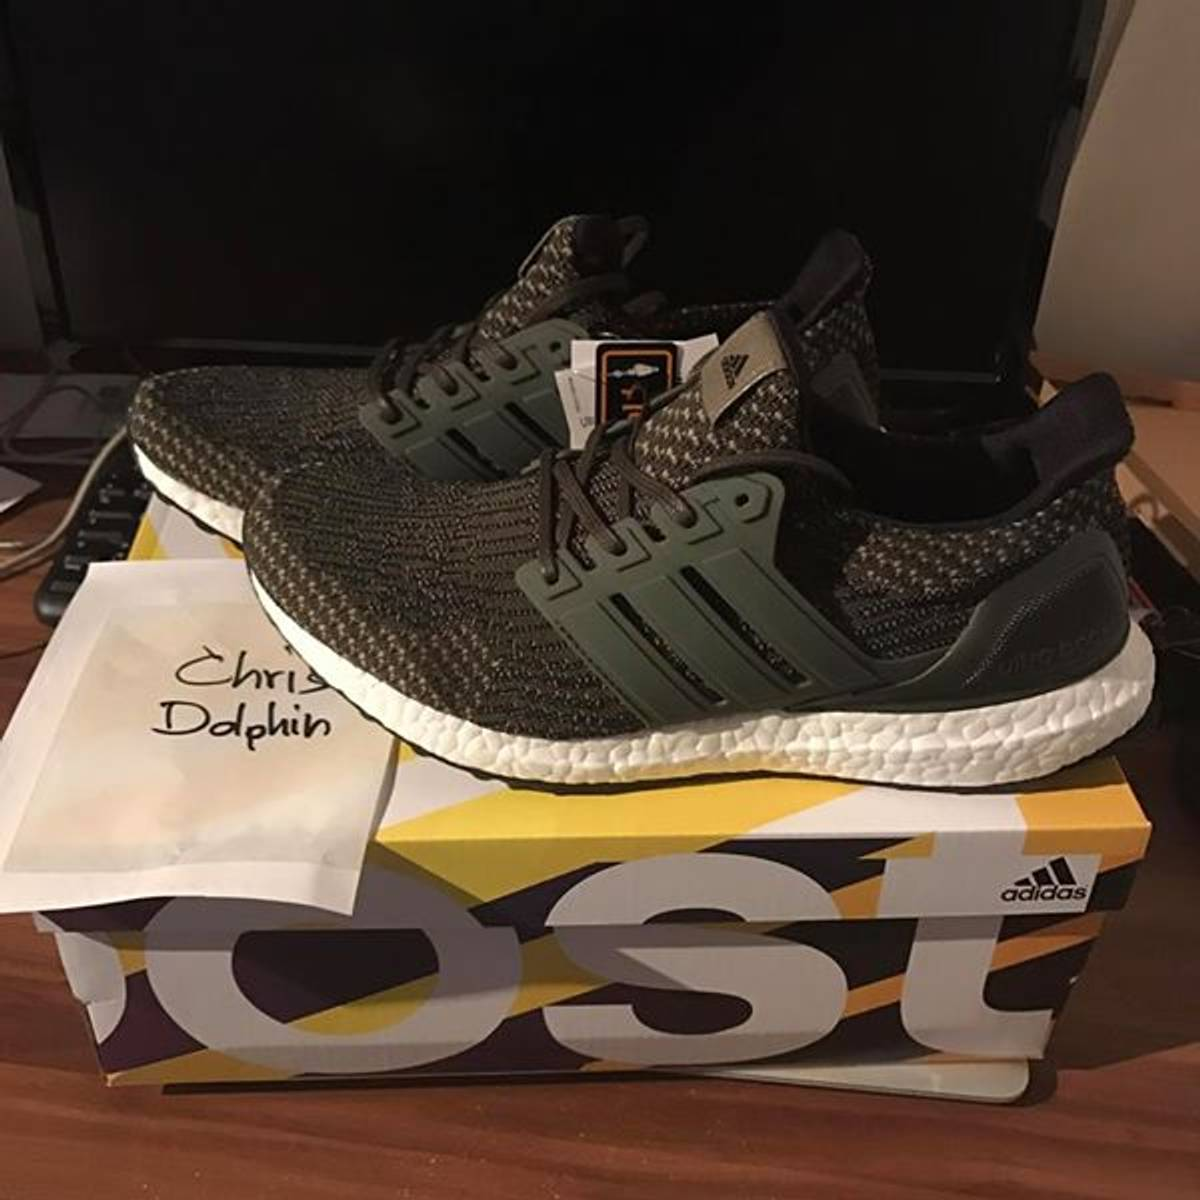 New DS Adidas Ultraboost 3.0 Black BA8842 Size 10